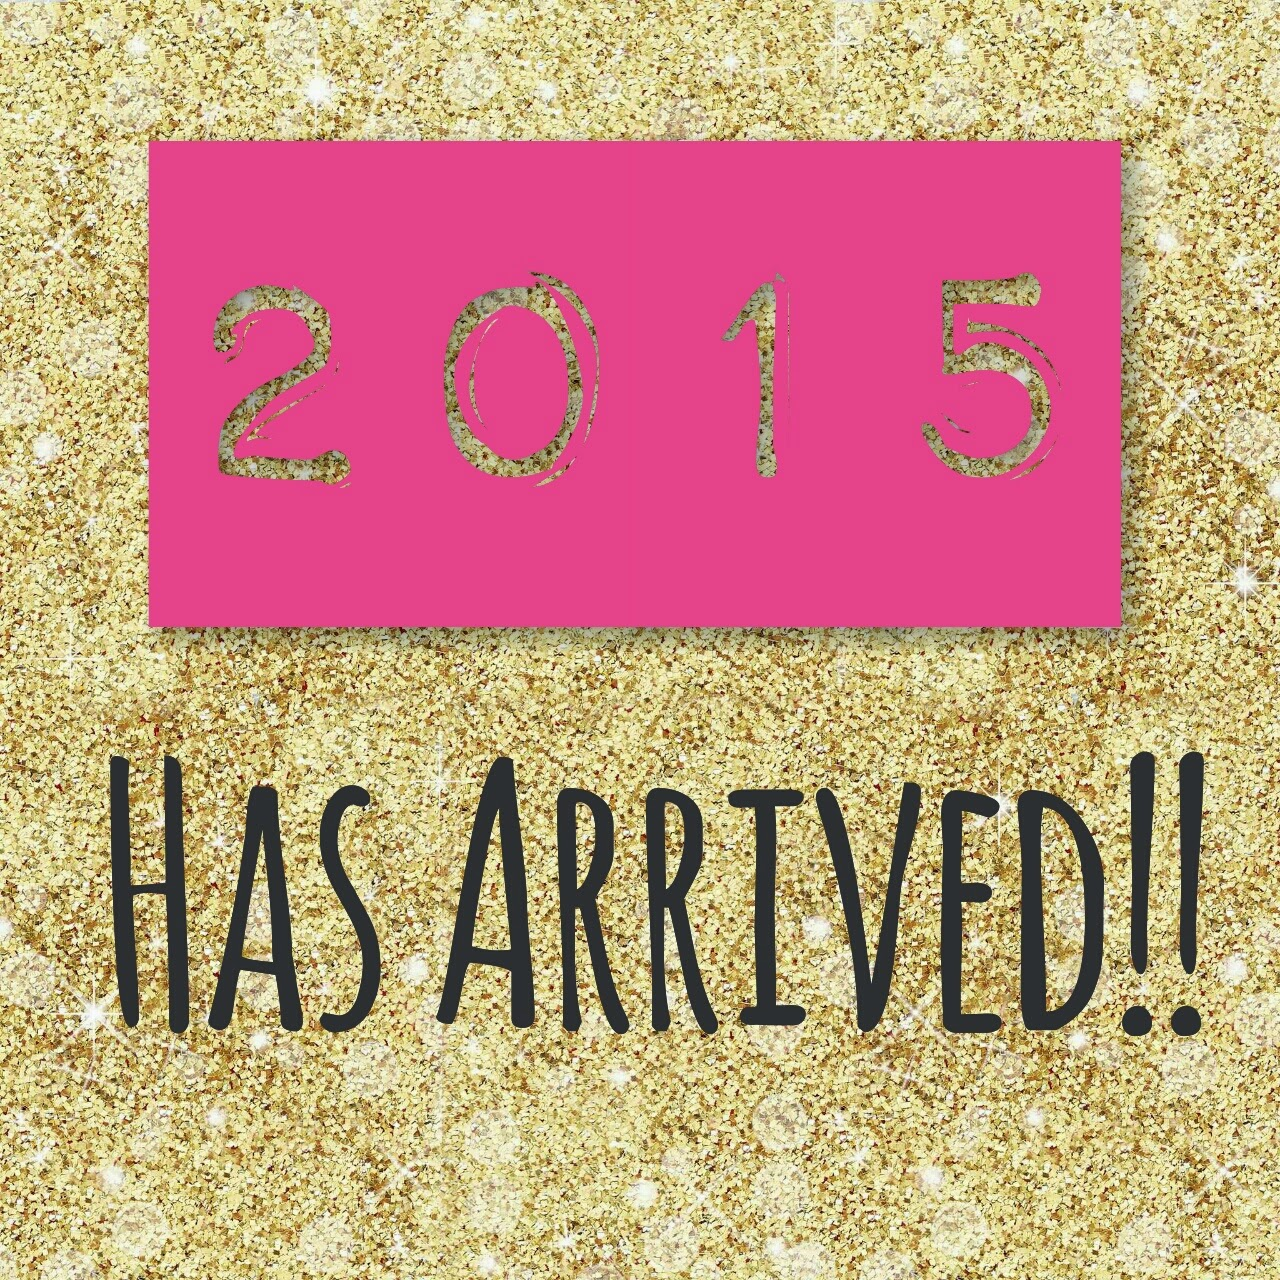 2015 has arrived on lilacpaperdoll.com